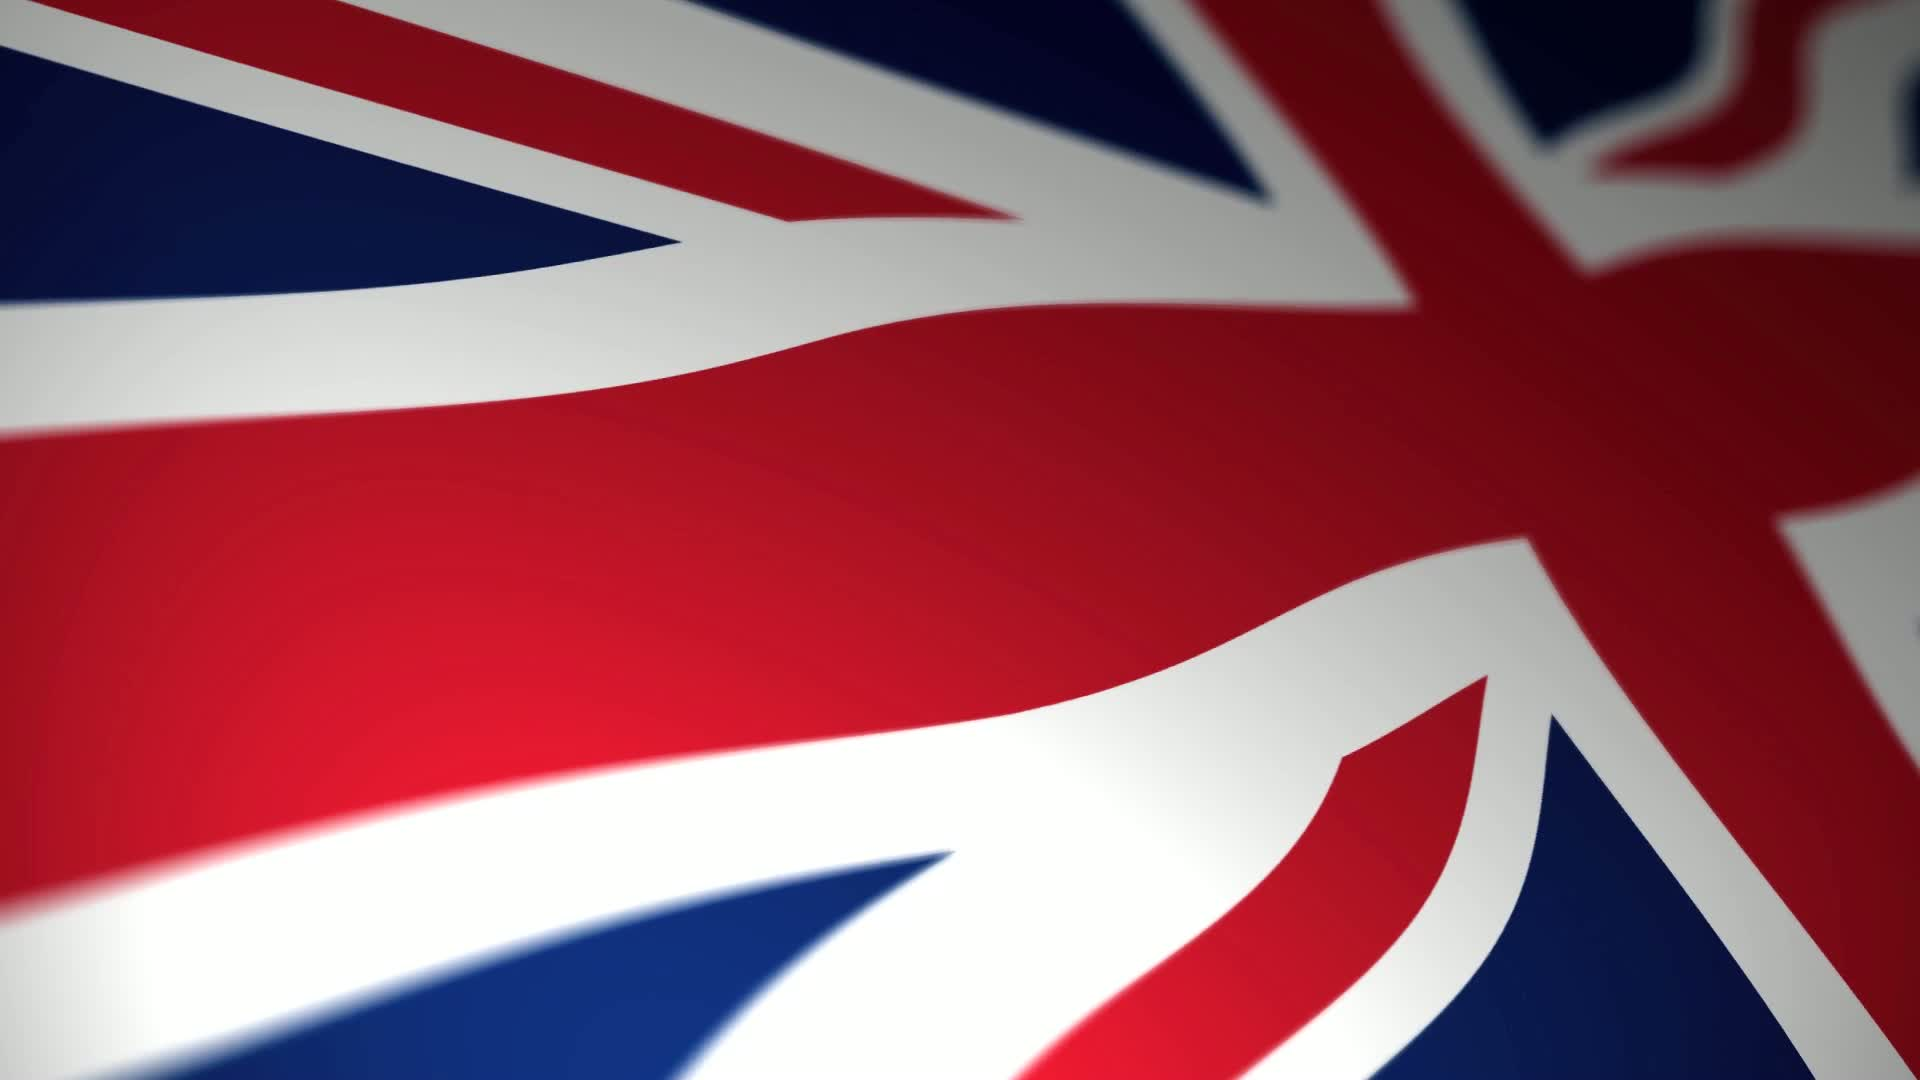 uk union jack briatin flag hd wallpaper download